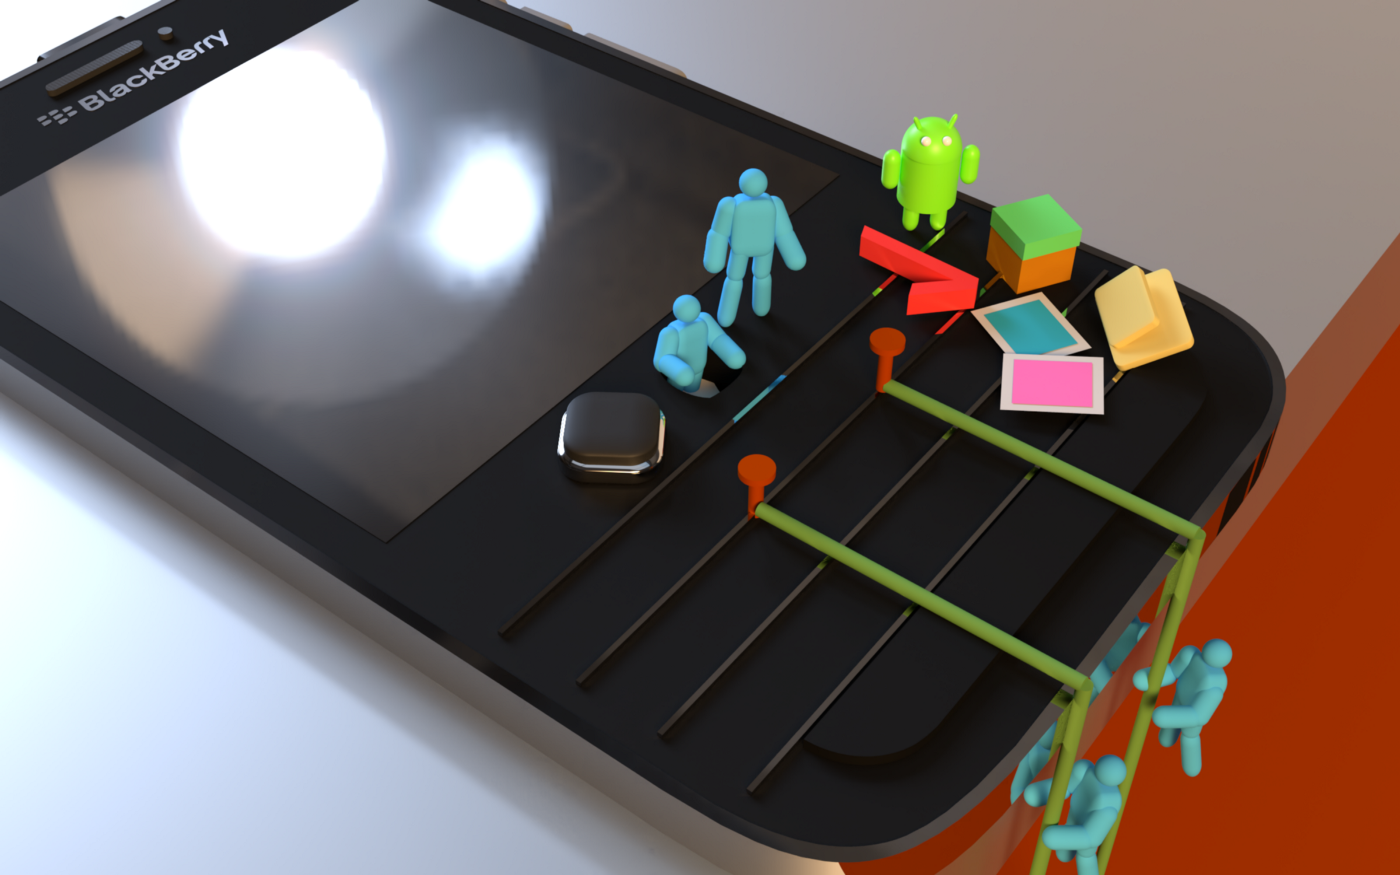 A rendering of a Blackberry smartphone with 3D characters hanging out around the phone.